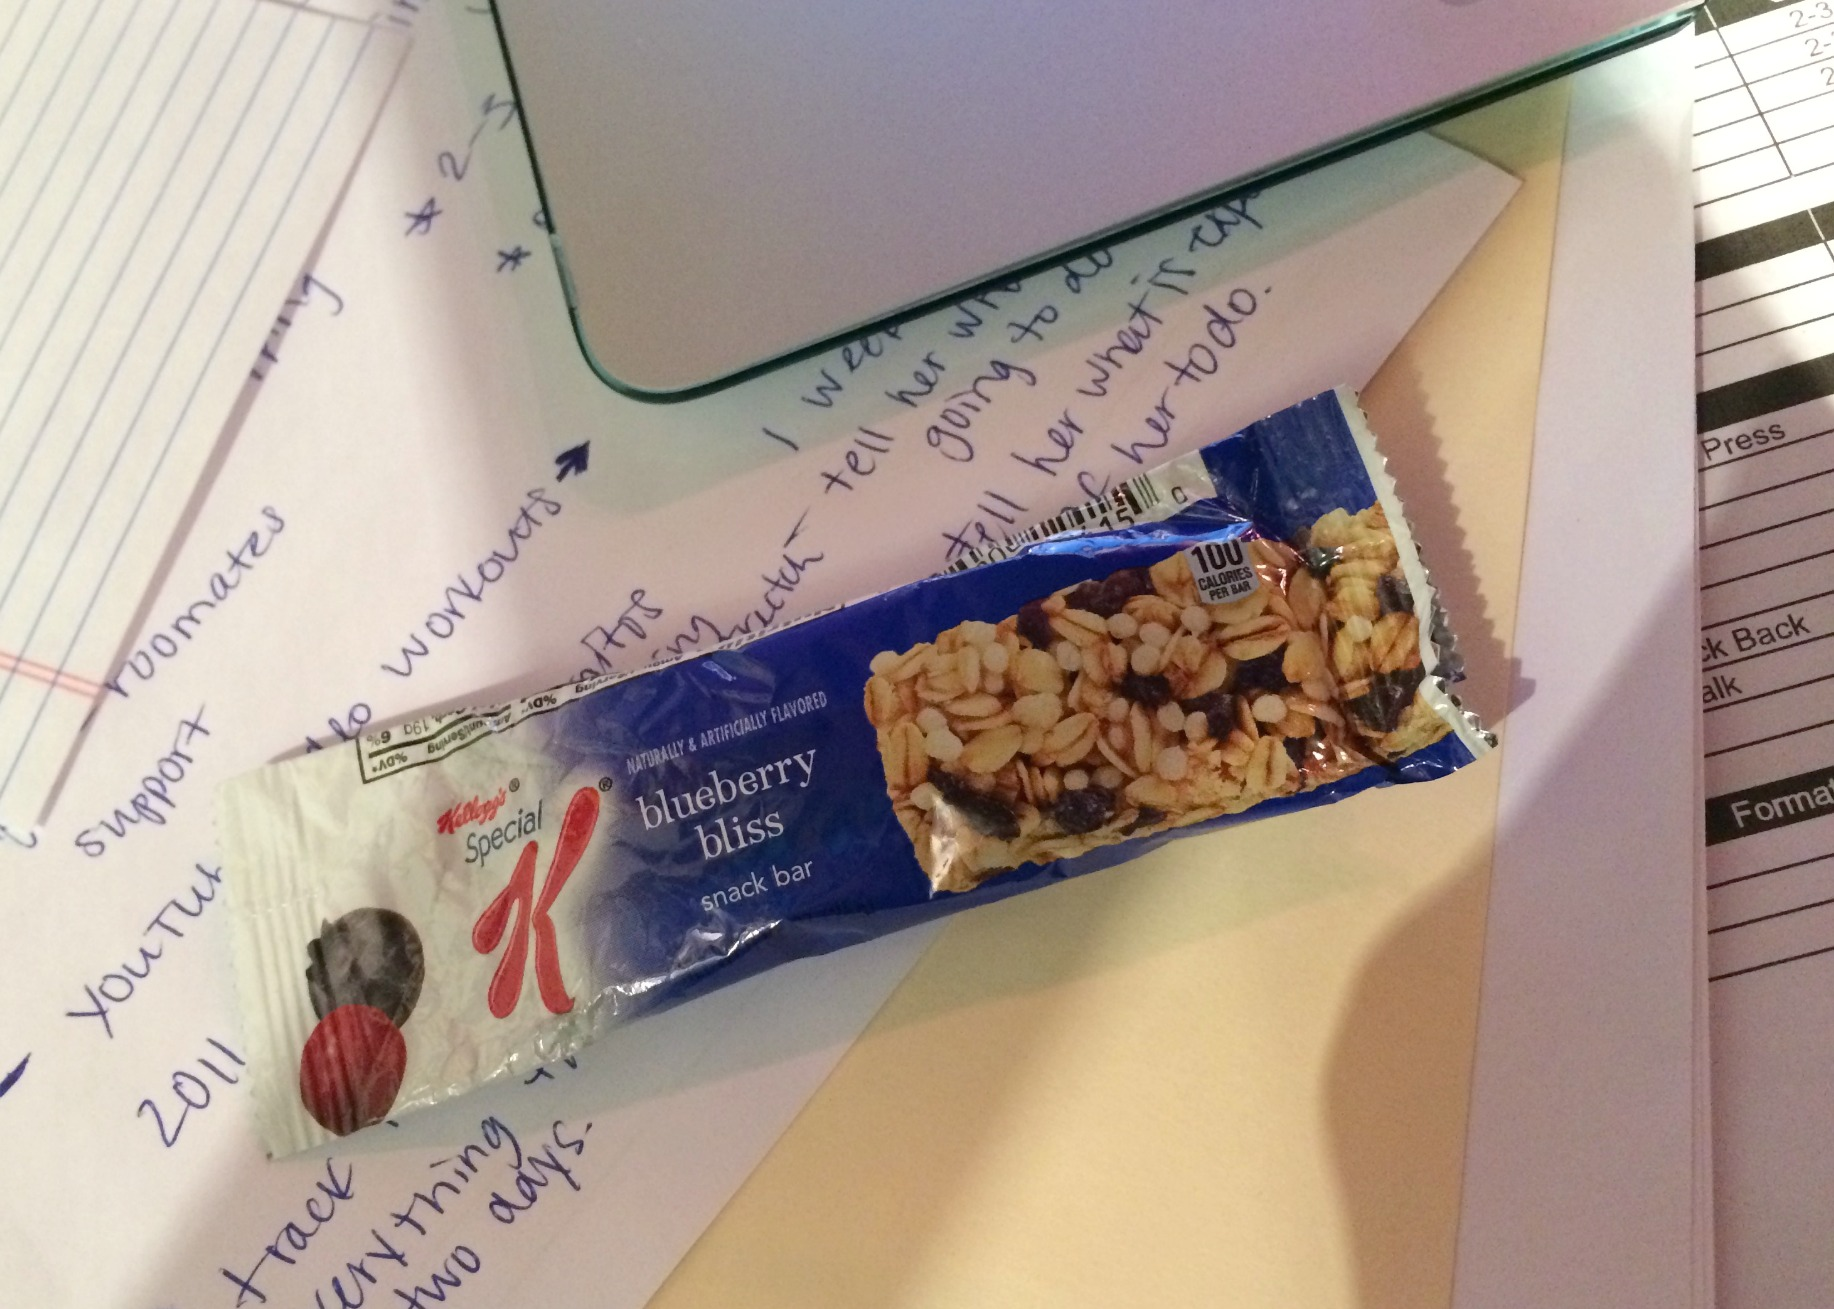 special k blueberry bliss snack bar